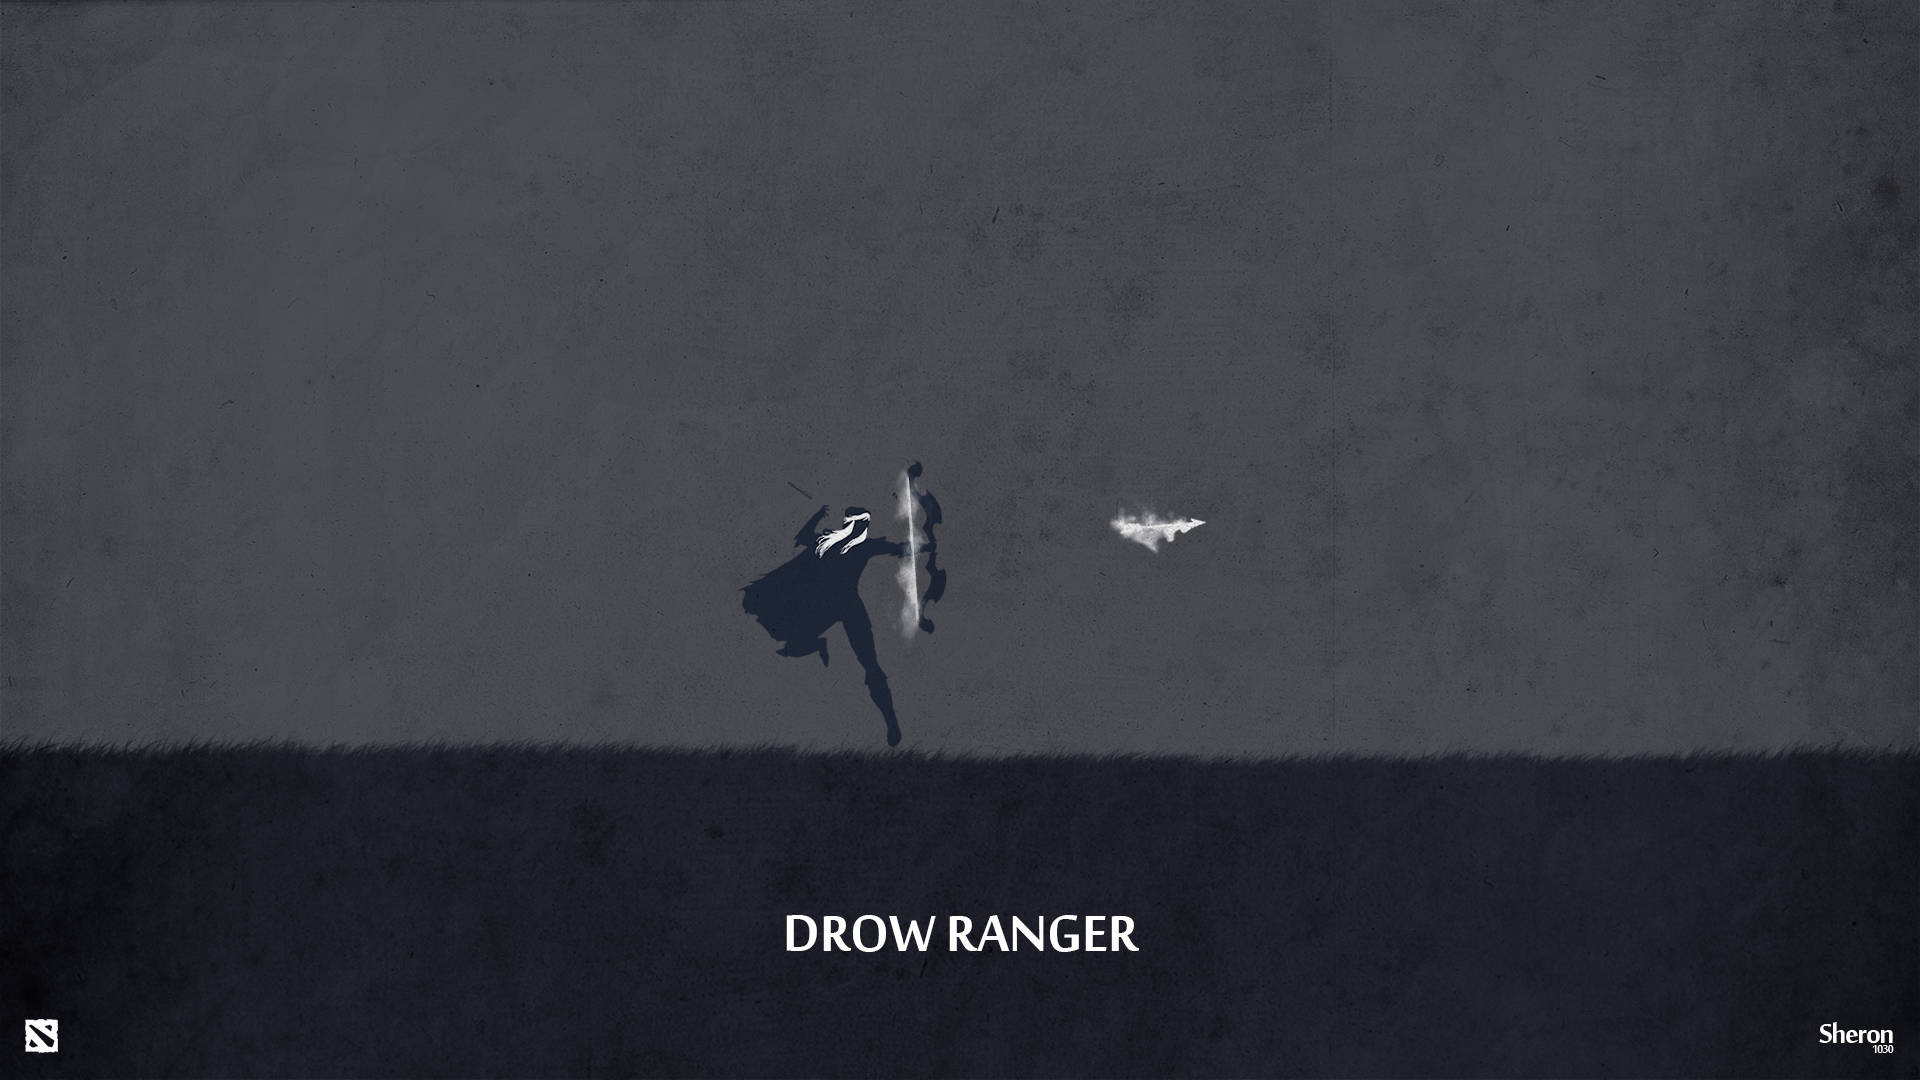 Drow Ranger Dota Wallpaper